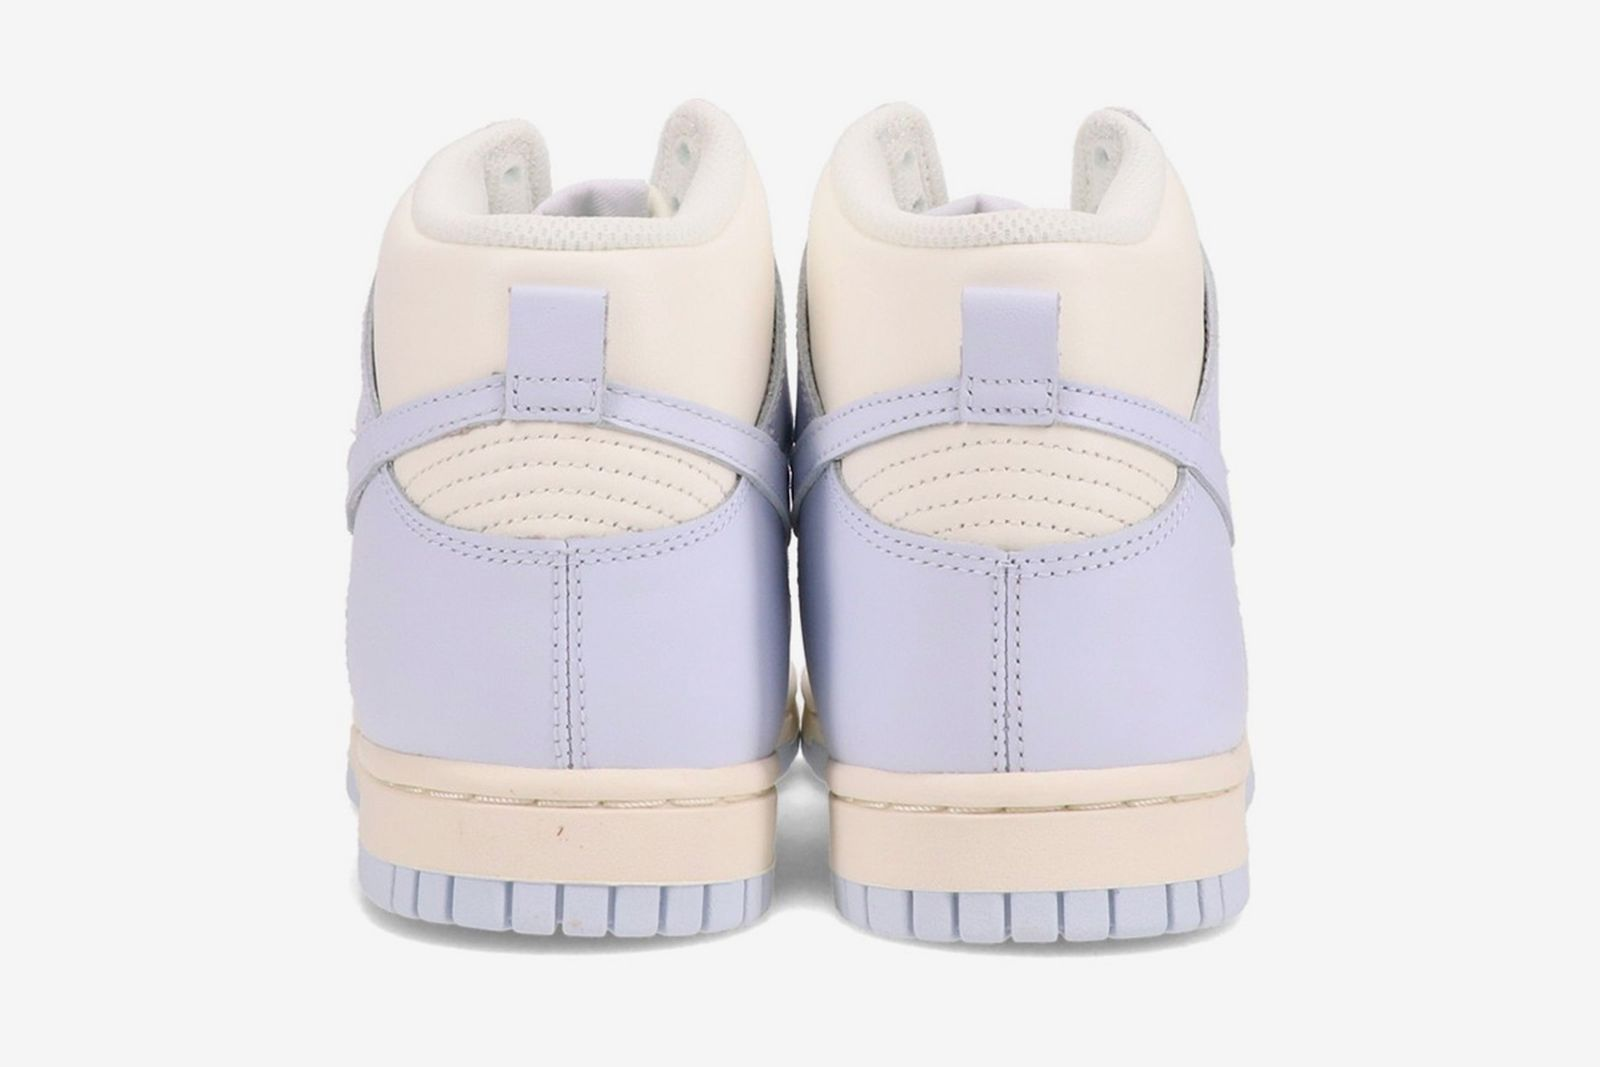 nike-dunks-january-2021-release-date-price-24